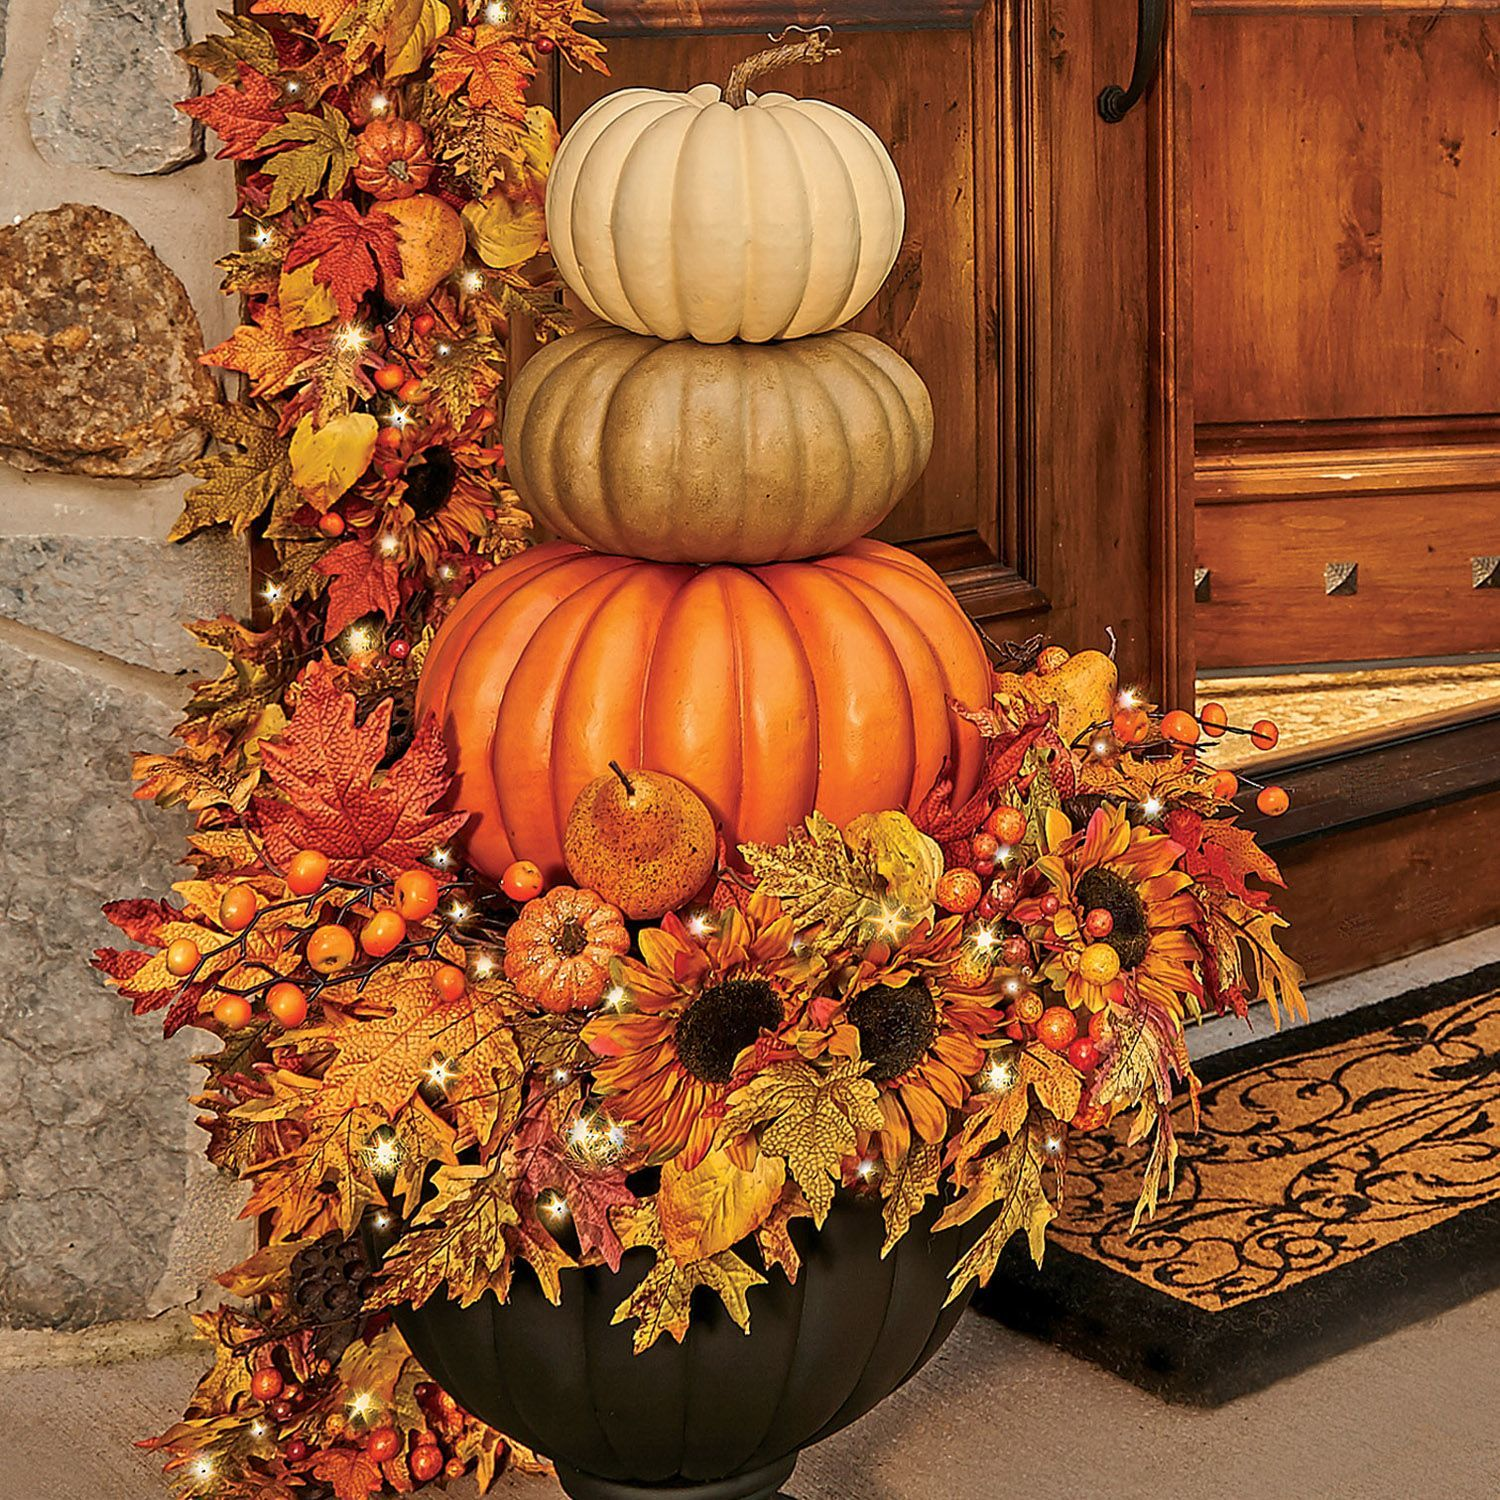 In The Subtle Tones Of The Fall Season These Pumpkin Stacks Can Be Flanked On Your Front Porch In Fall Decorations Porch Fall Outdoor Decor Pumpkin Fall Decor